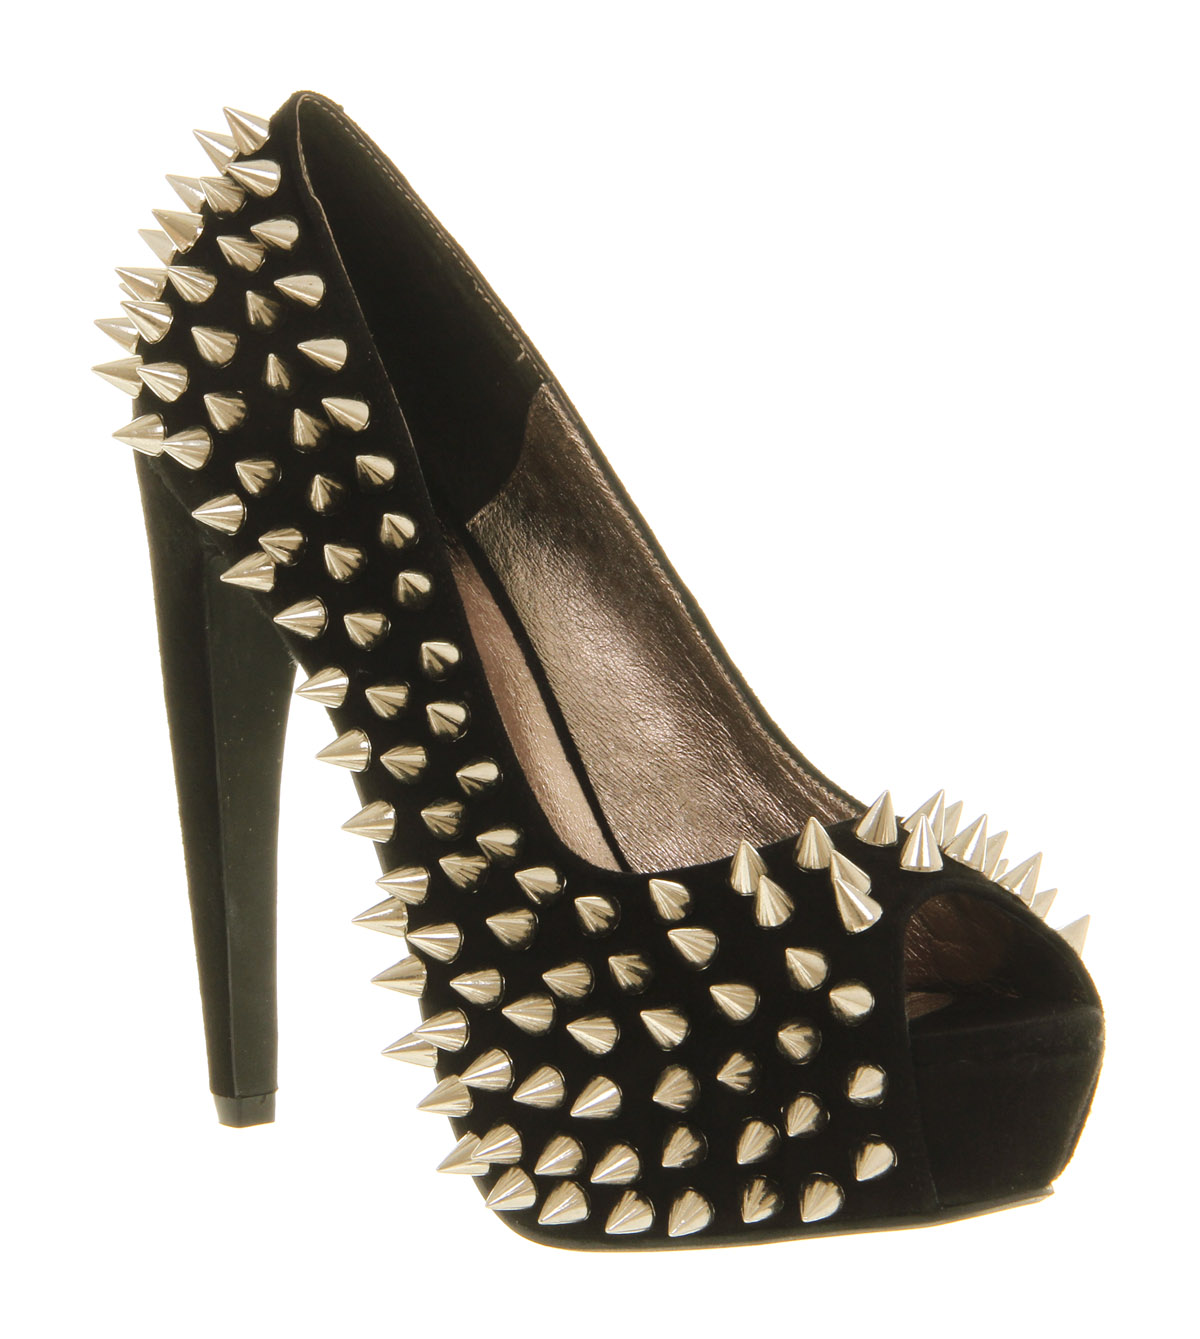 Womens High Heel Shoes with Spikes